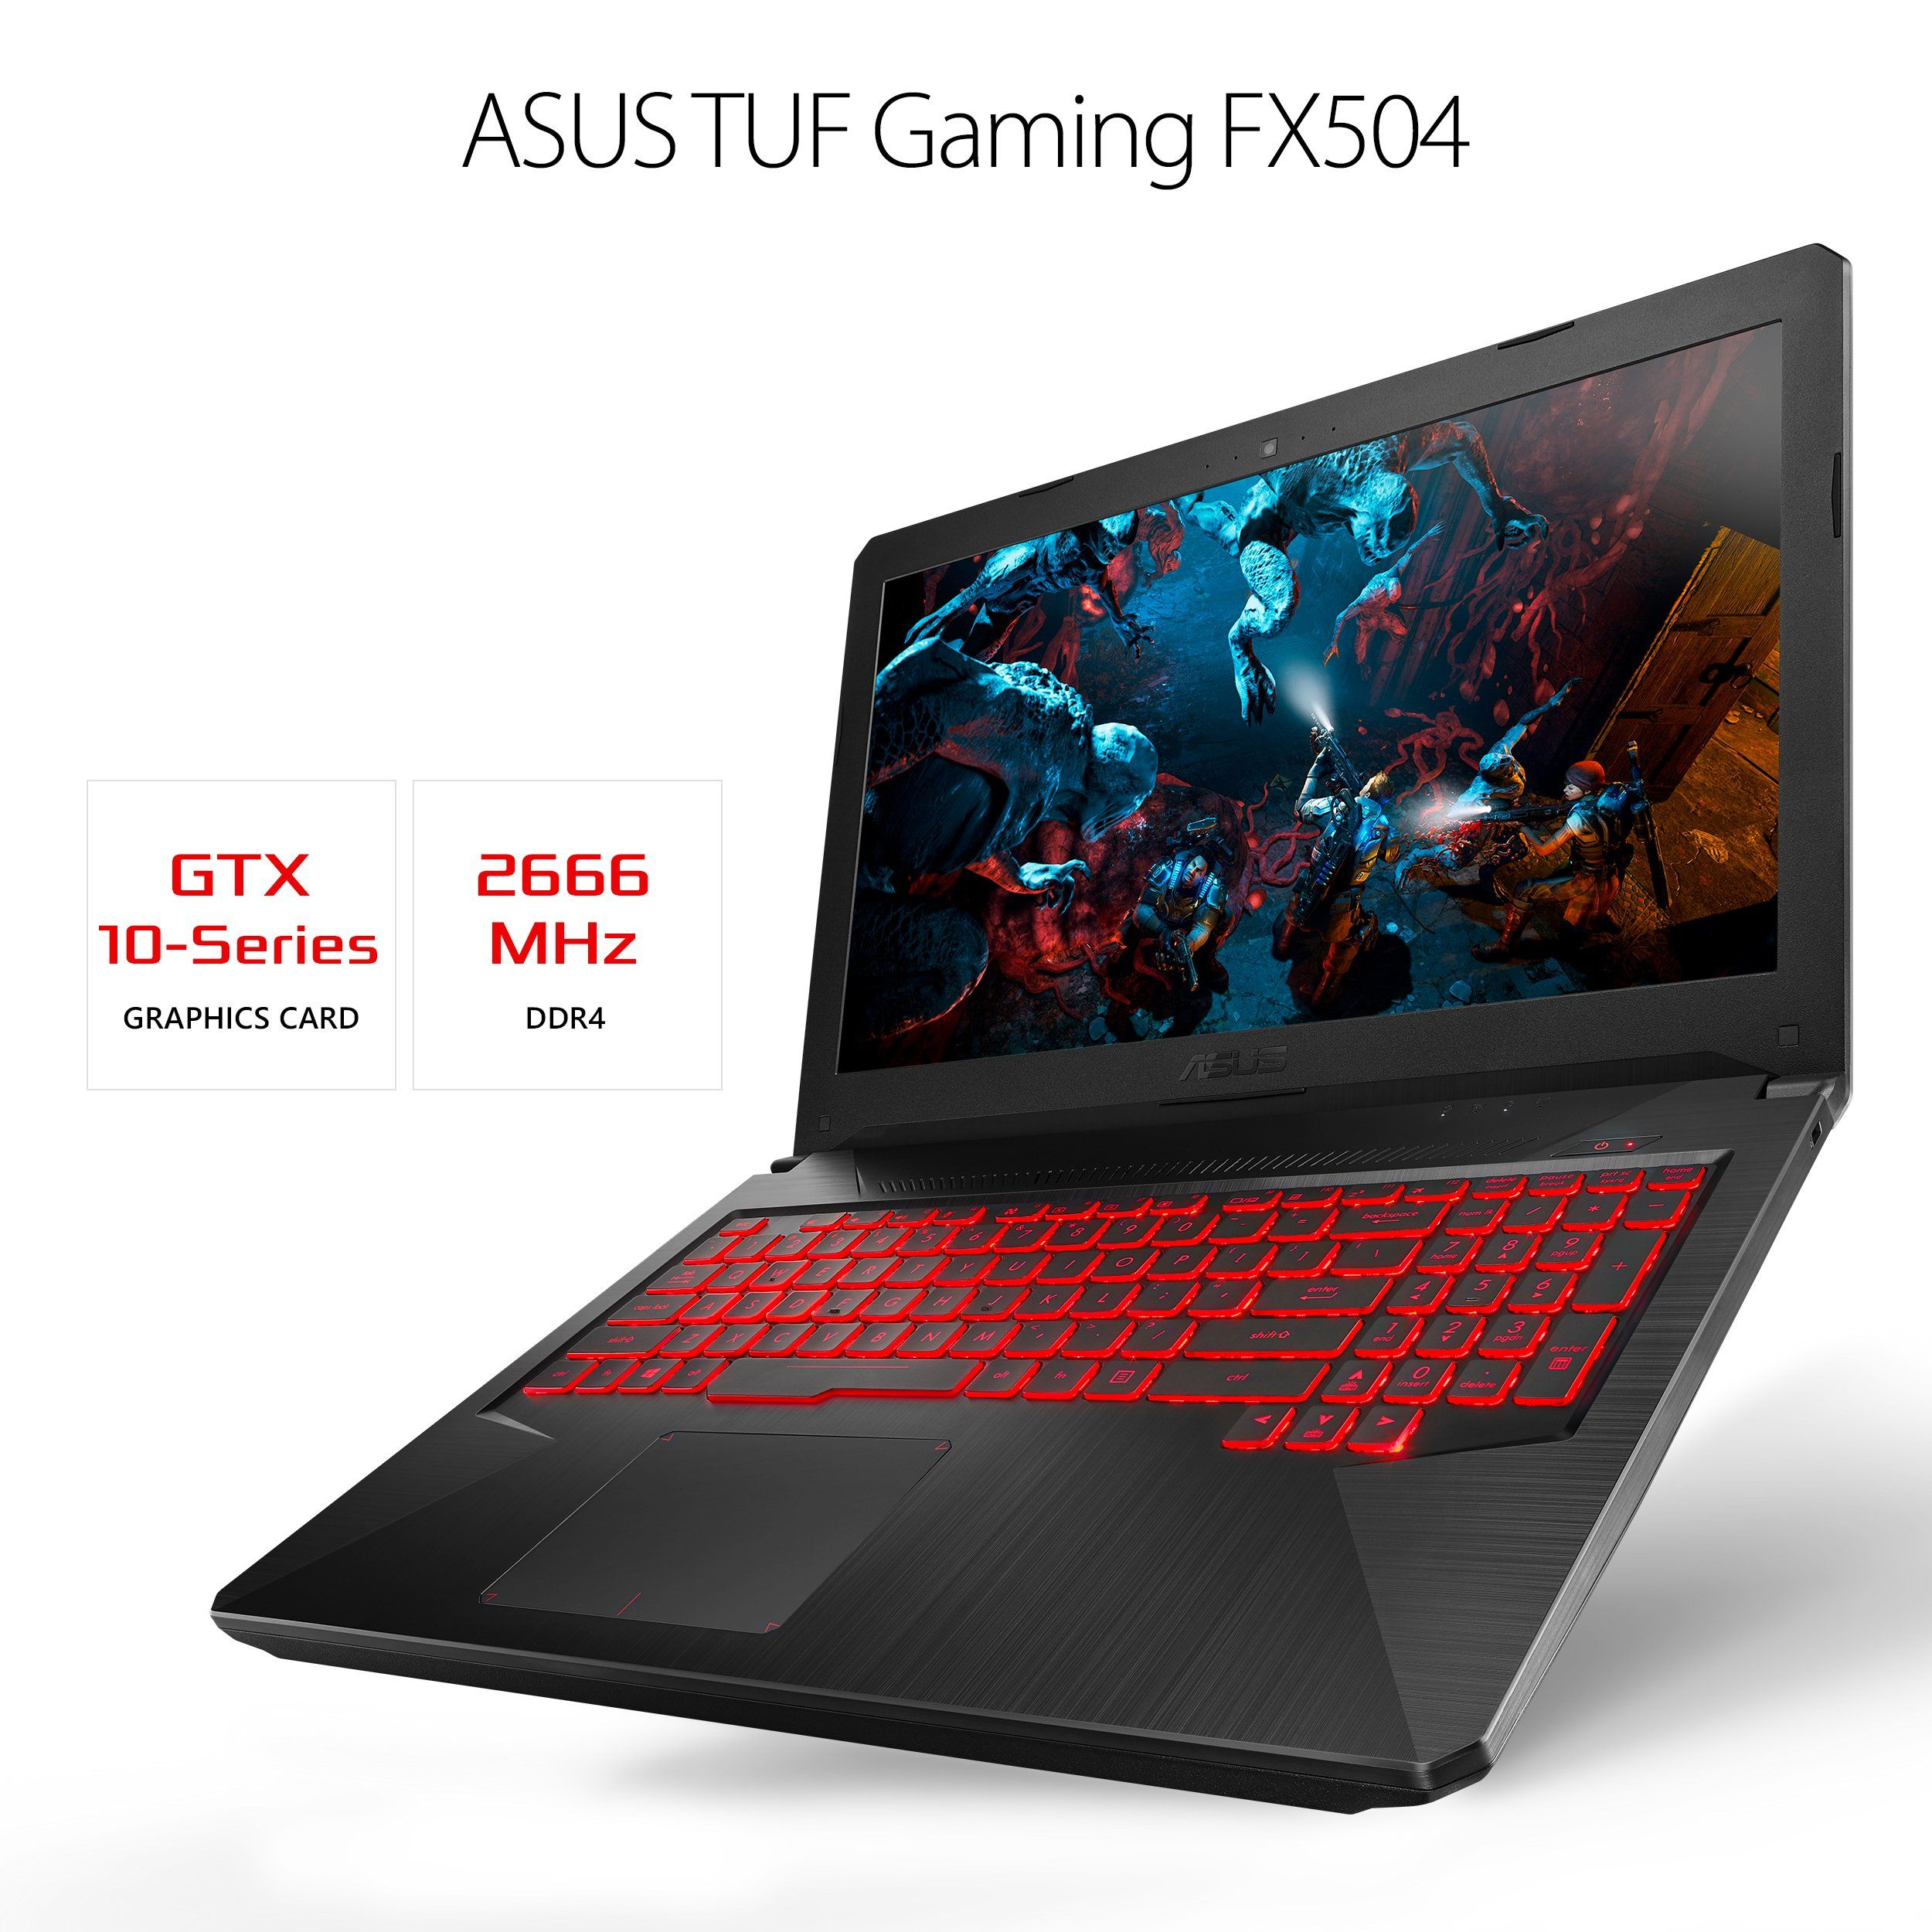 Pin By Any Shopping 24 On Gadgets Asus Asus Tuf Best Gaming Laptop